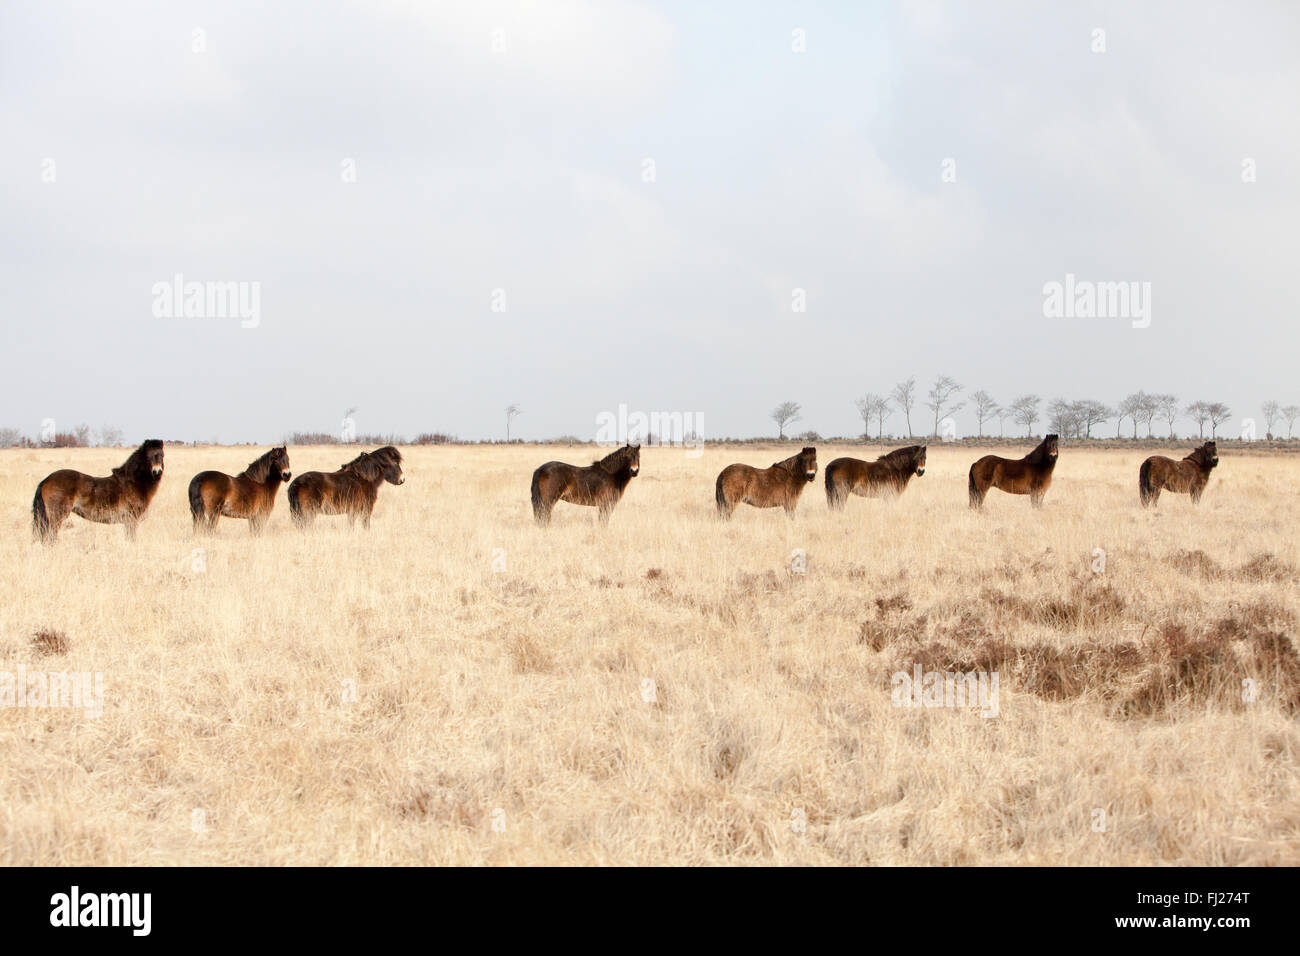 Wild Exmoor Pony Herd On Exmoor In North Devon - Stock Image